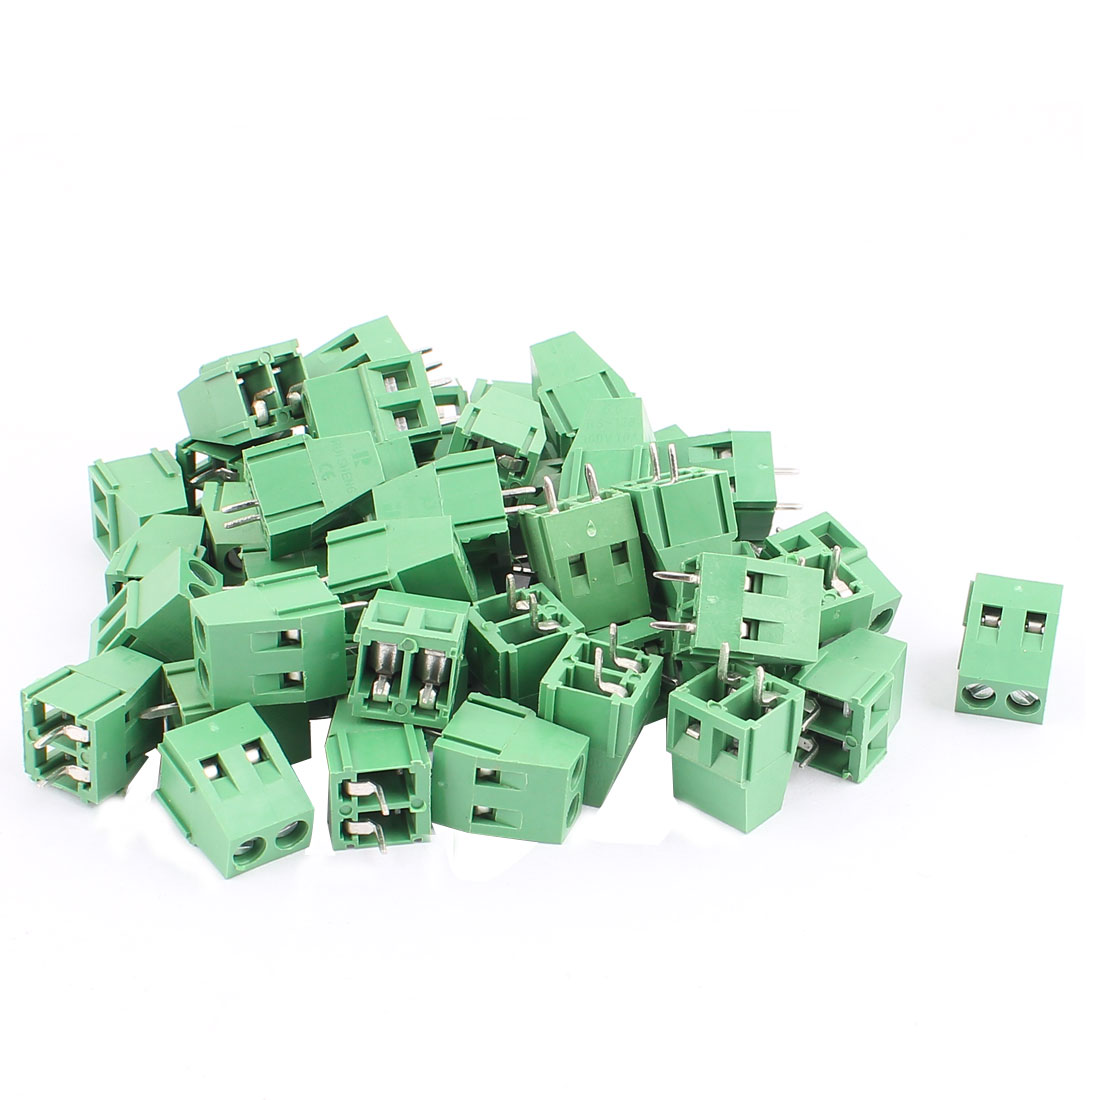 50 Pcs 5.08mm Pitch 2P Male PCB Inserted Terminal Block Connector Adapter